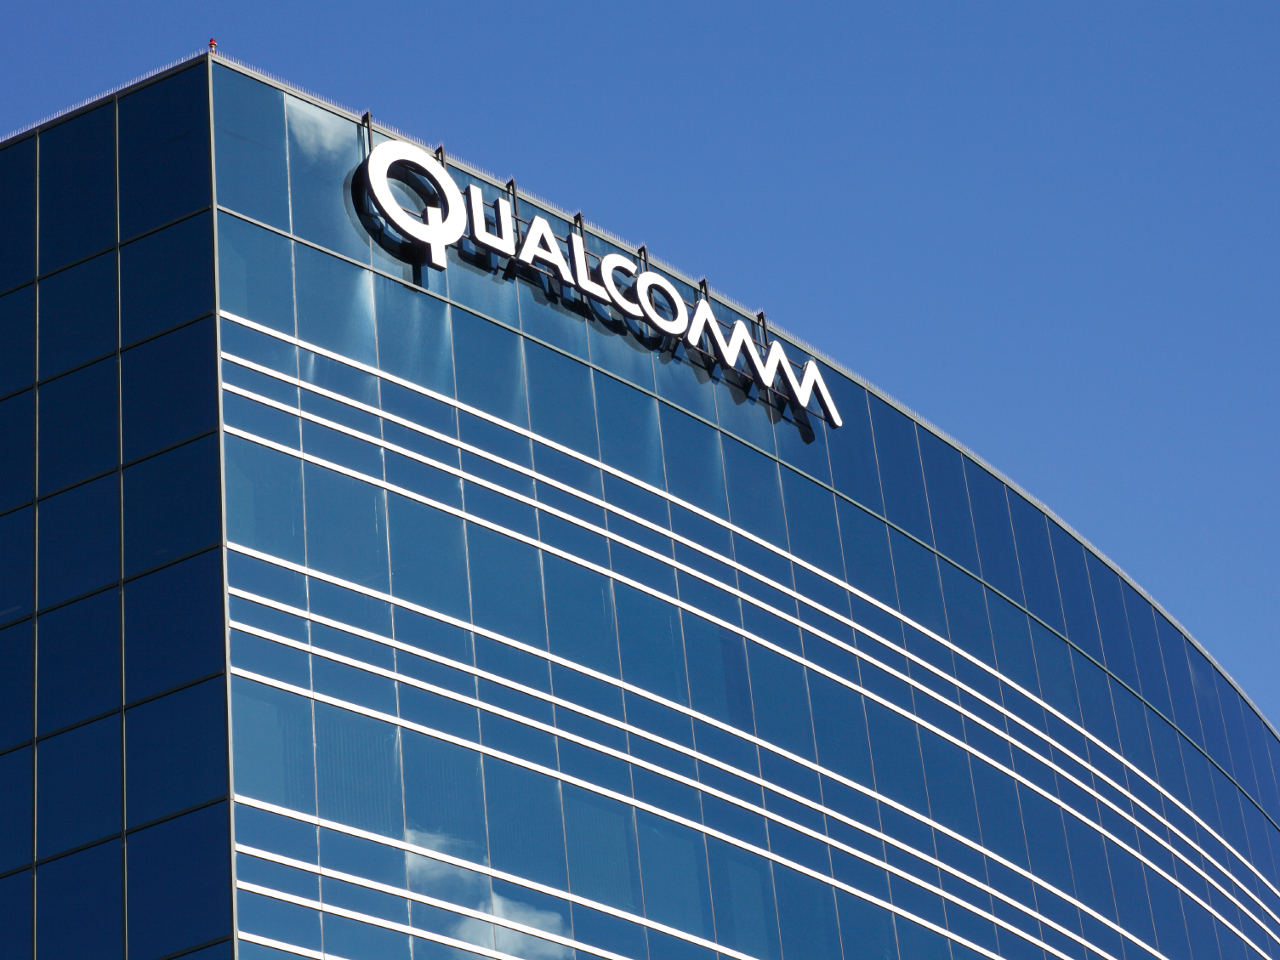 https://cdn1.vox-cdn.com/uploads/chorus_image/image/49532693/20151103-qualcomm-building.0.jpg